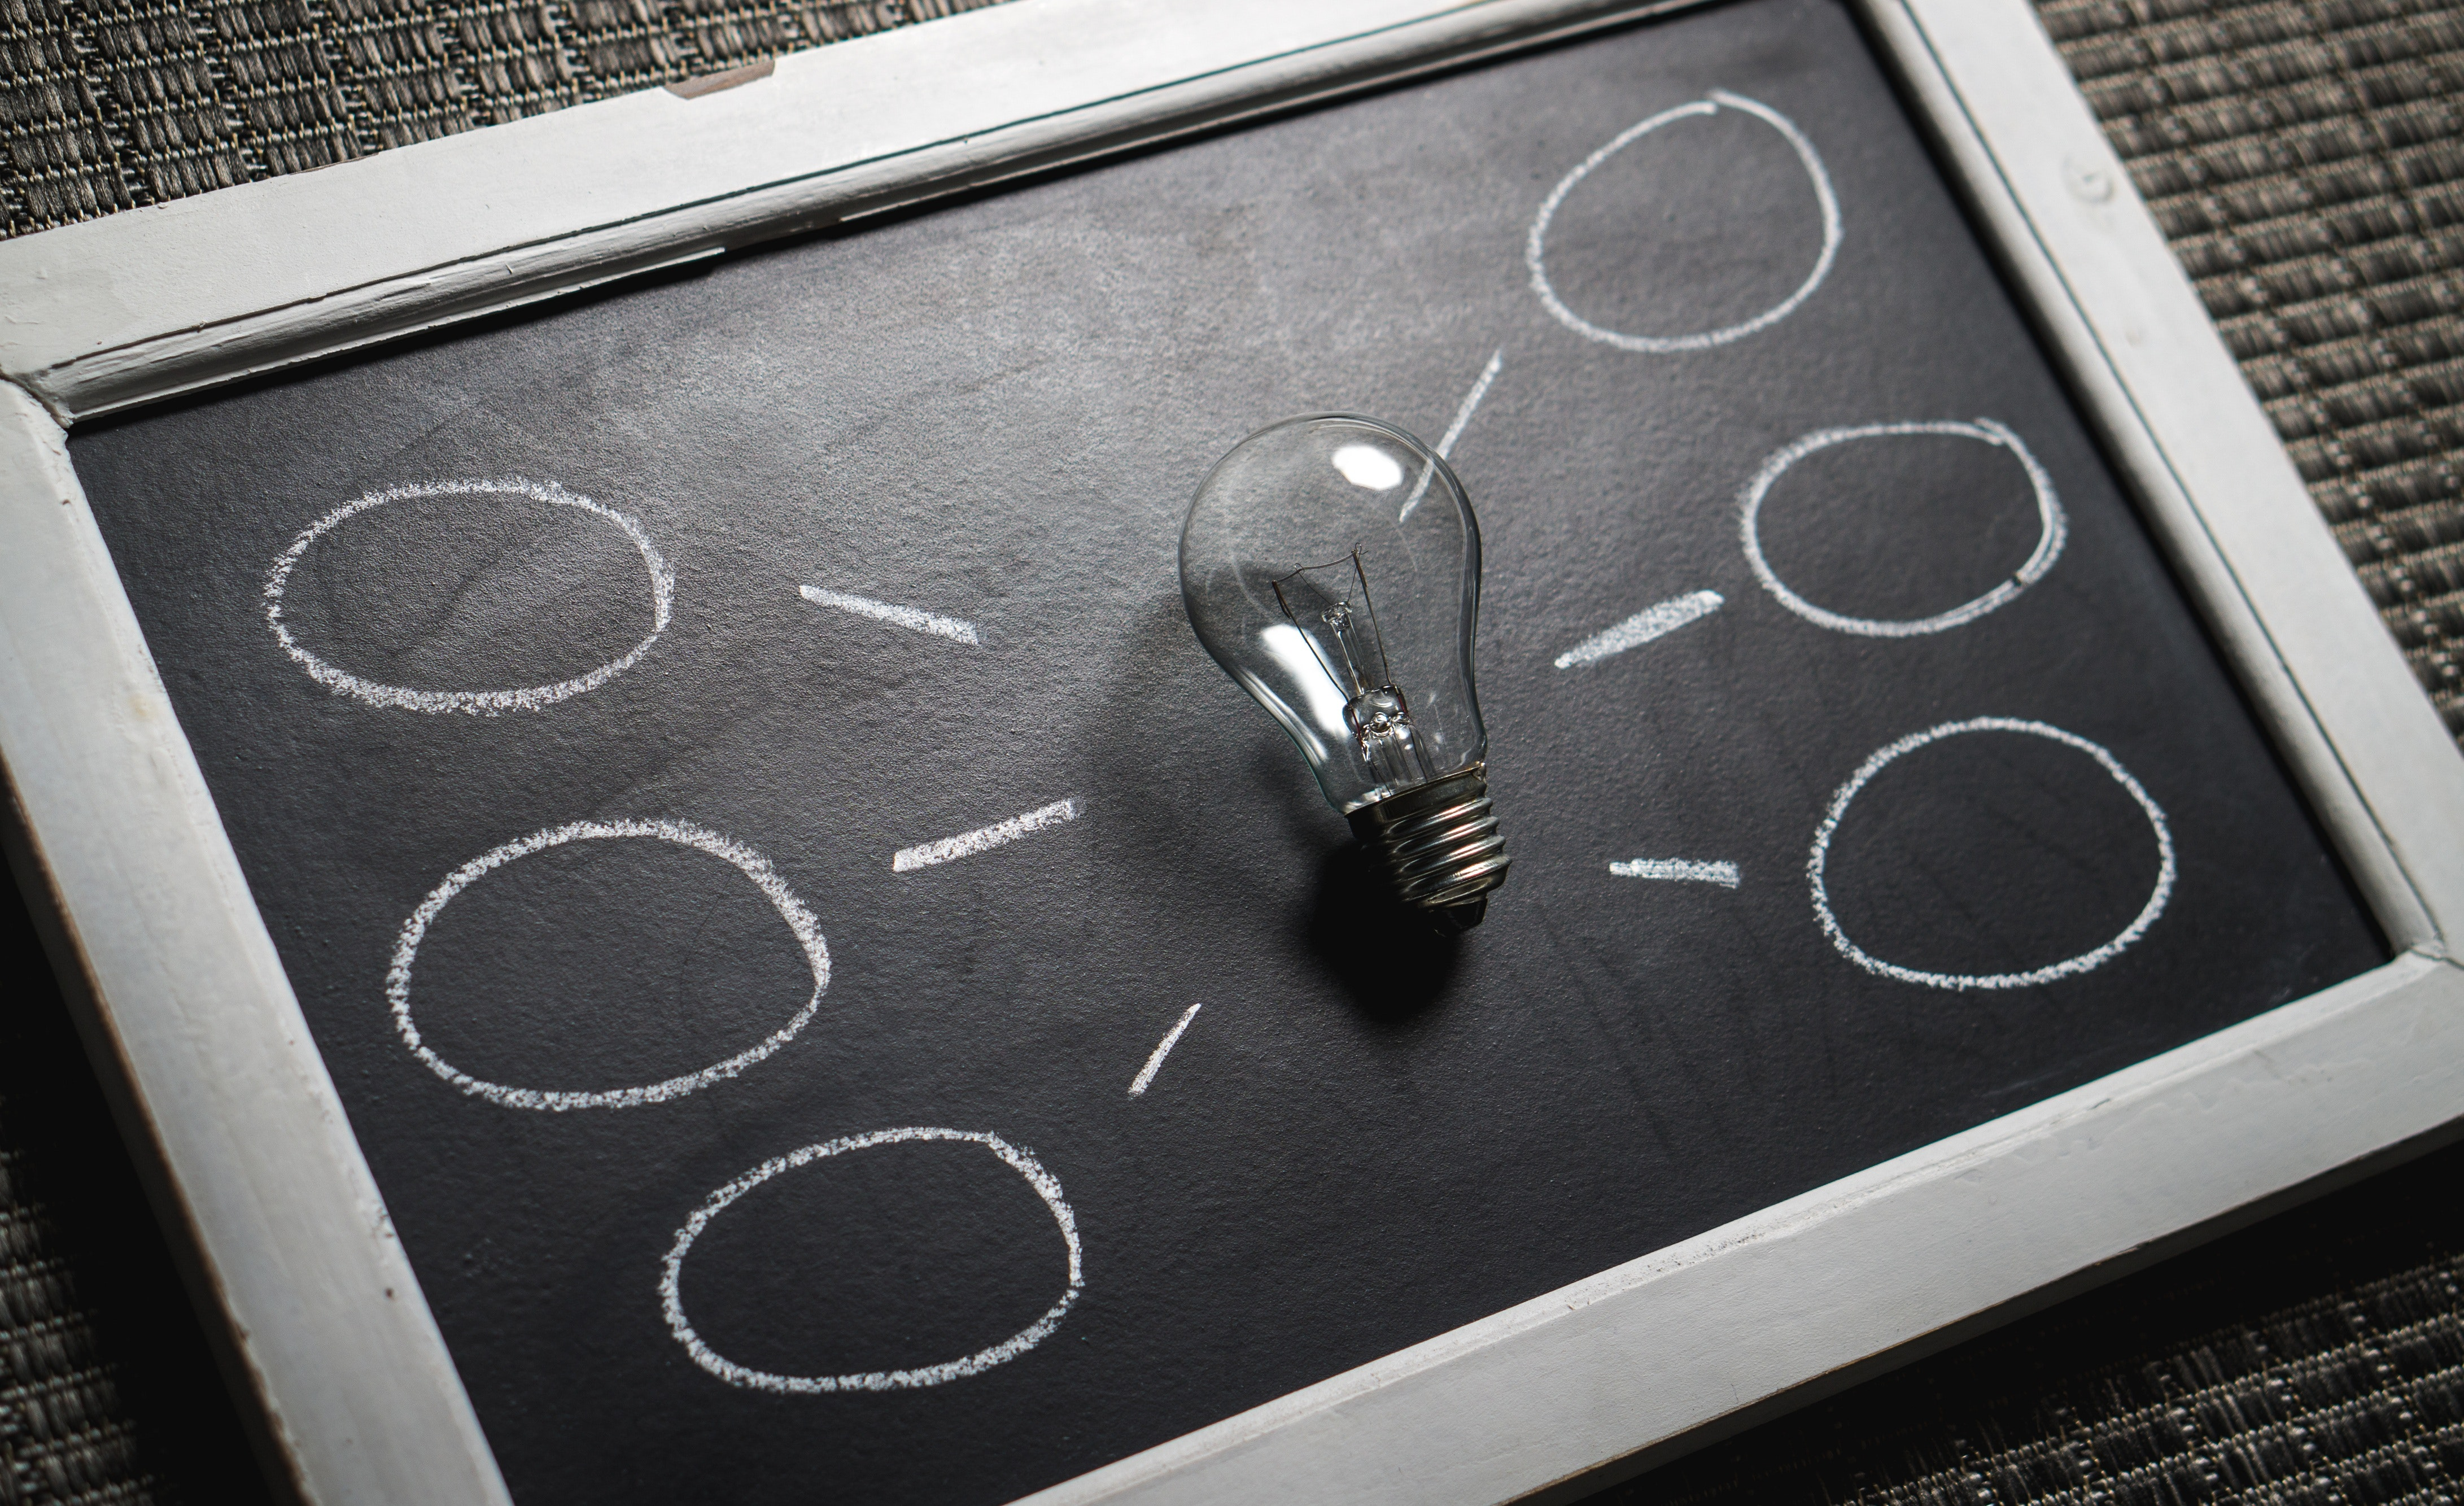 blackboard with light bulb and idea bubbles drawn around it